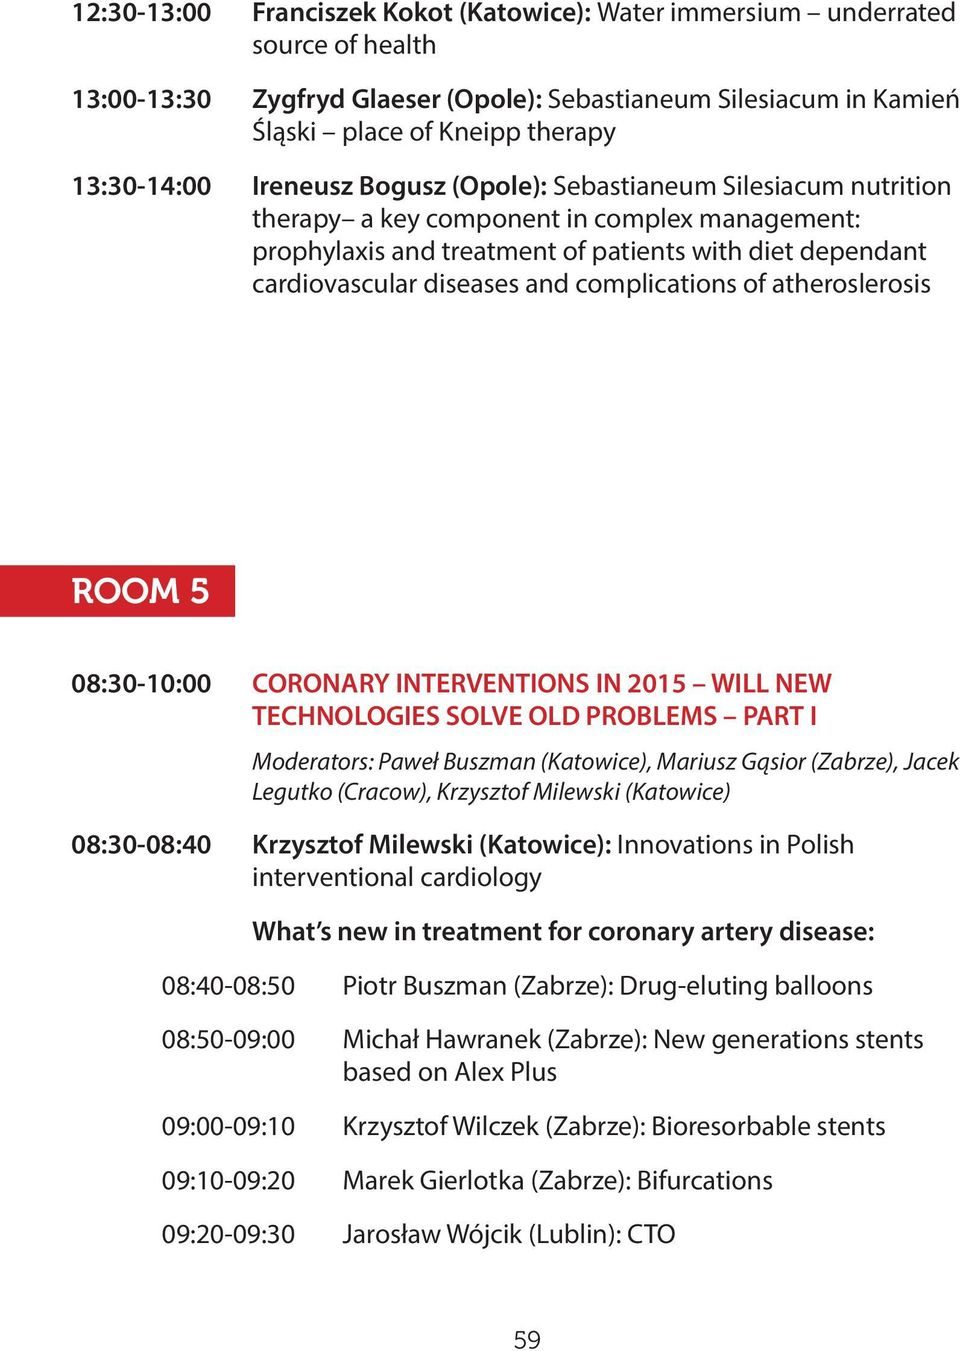 complications of atheroslerosis ROOM 5 08:30-10:00 CORONARY INTERVENTIONS IN 2015 WILL NEW TECHNOLOGIES SOLVE OLD PROBLEMS PART I Moderators: Paweł Buszman (Katowice), Mariusz Gąsior (Zabrze), Jacek